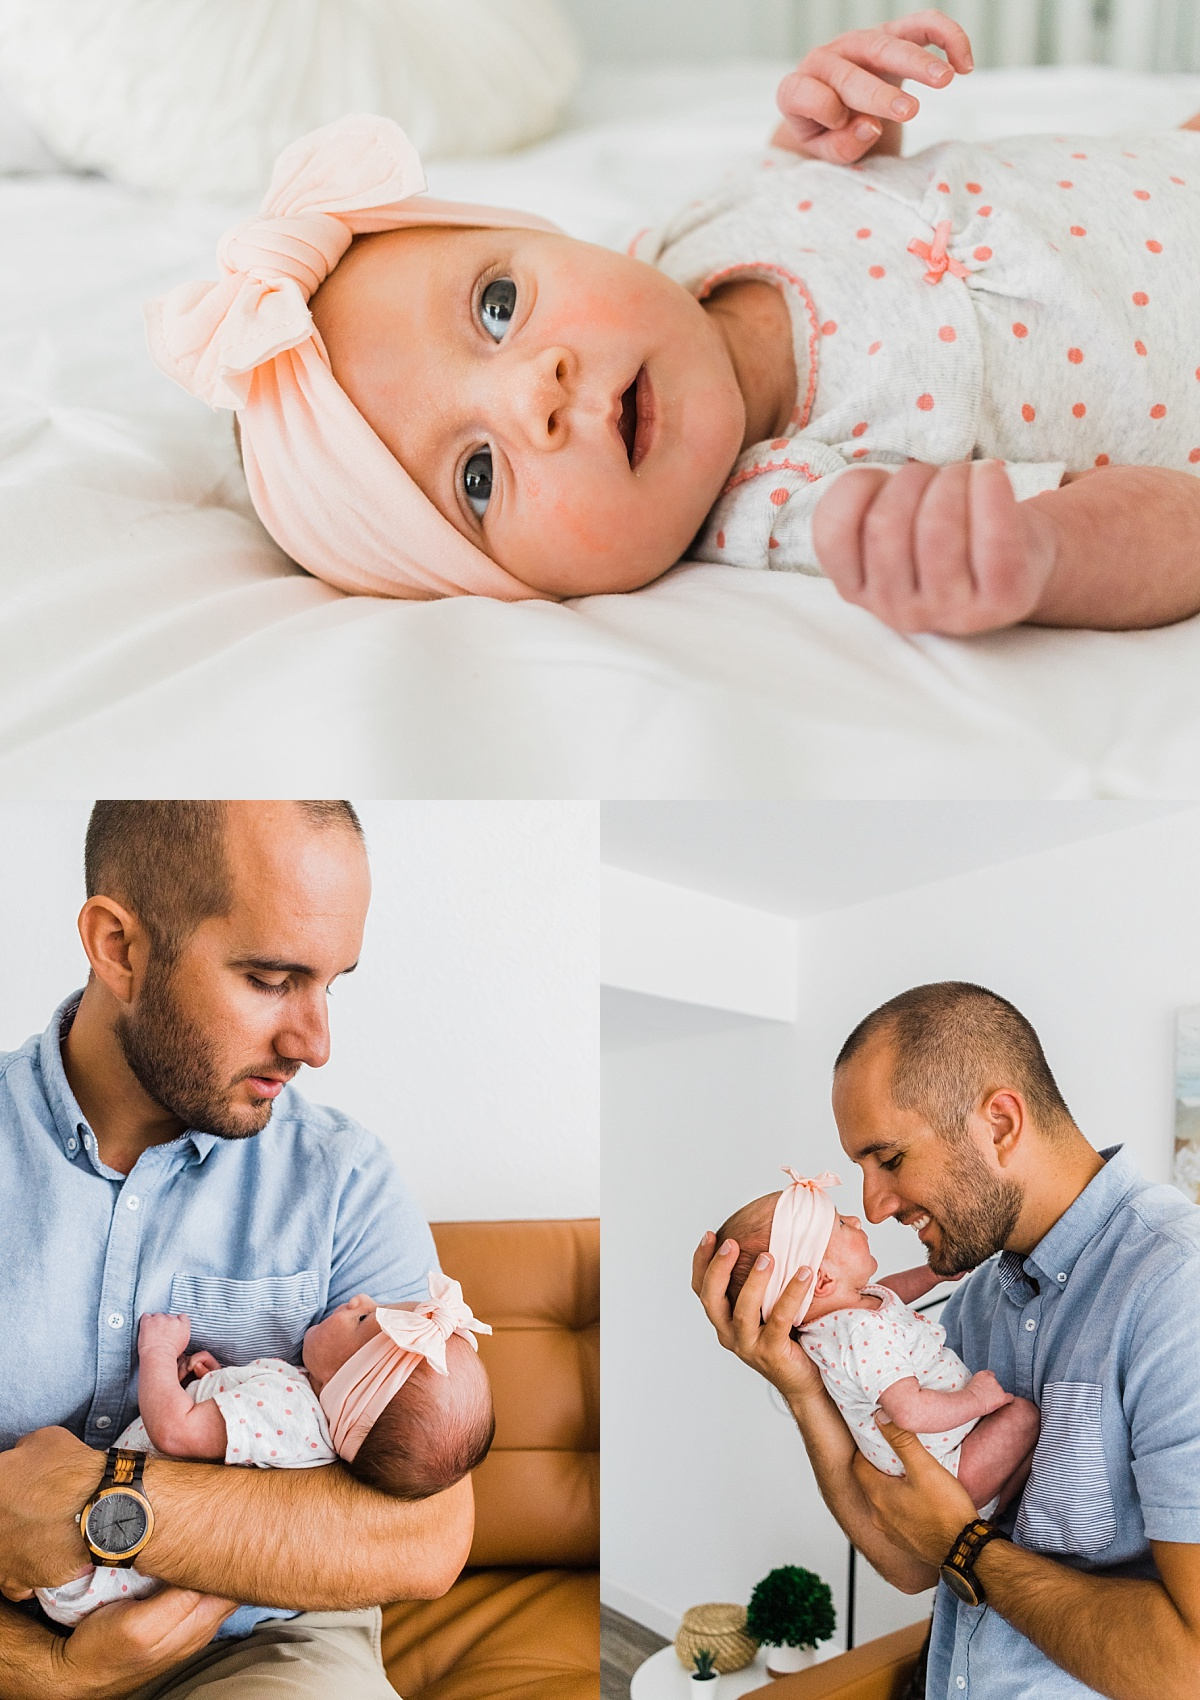 East Valley Newborn Photographer   Space One 2 One